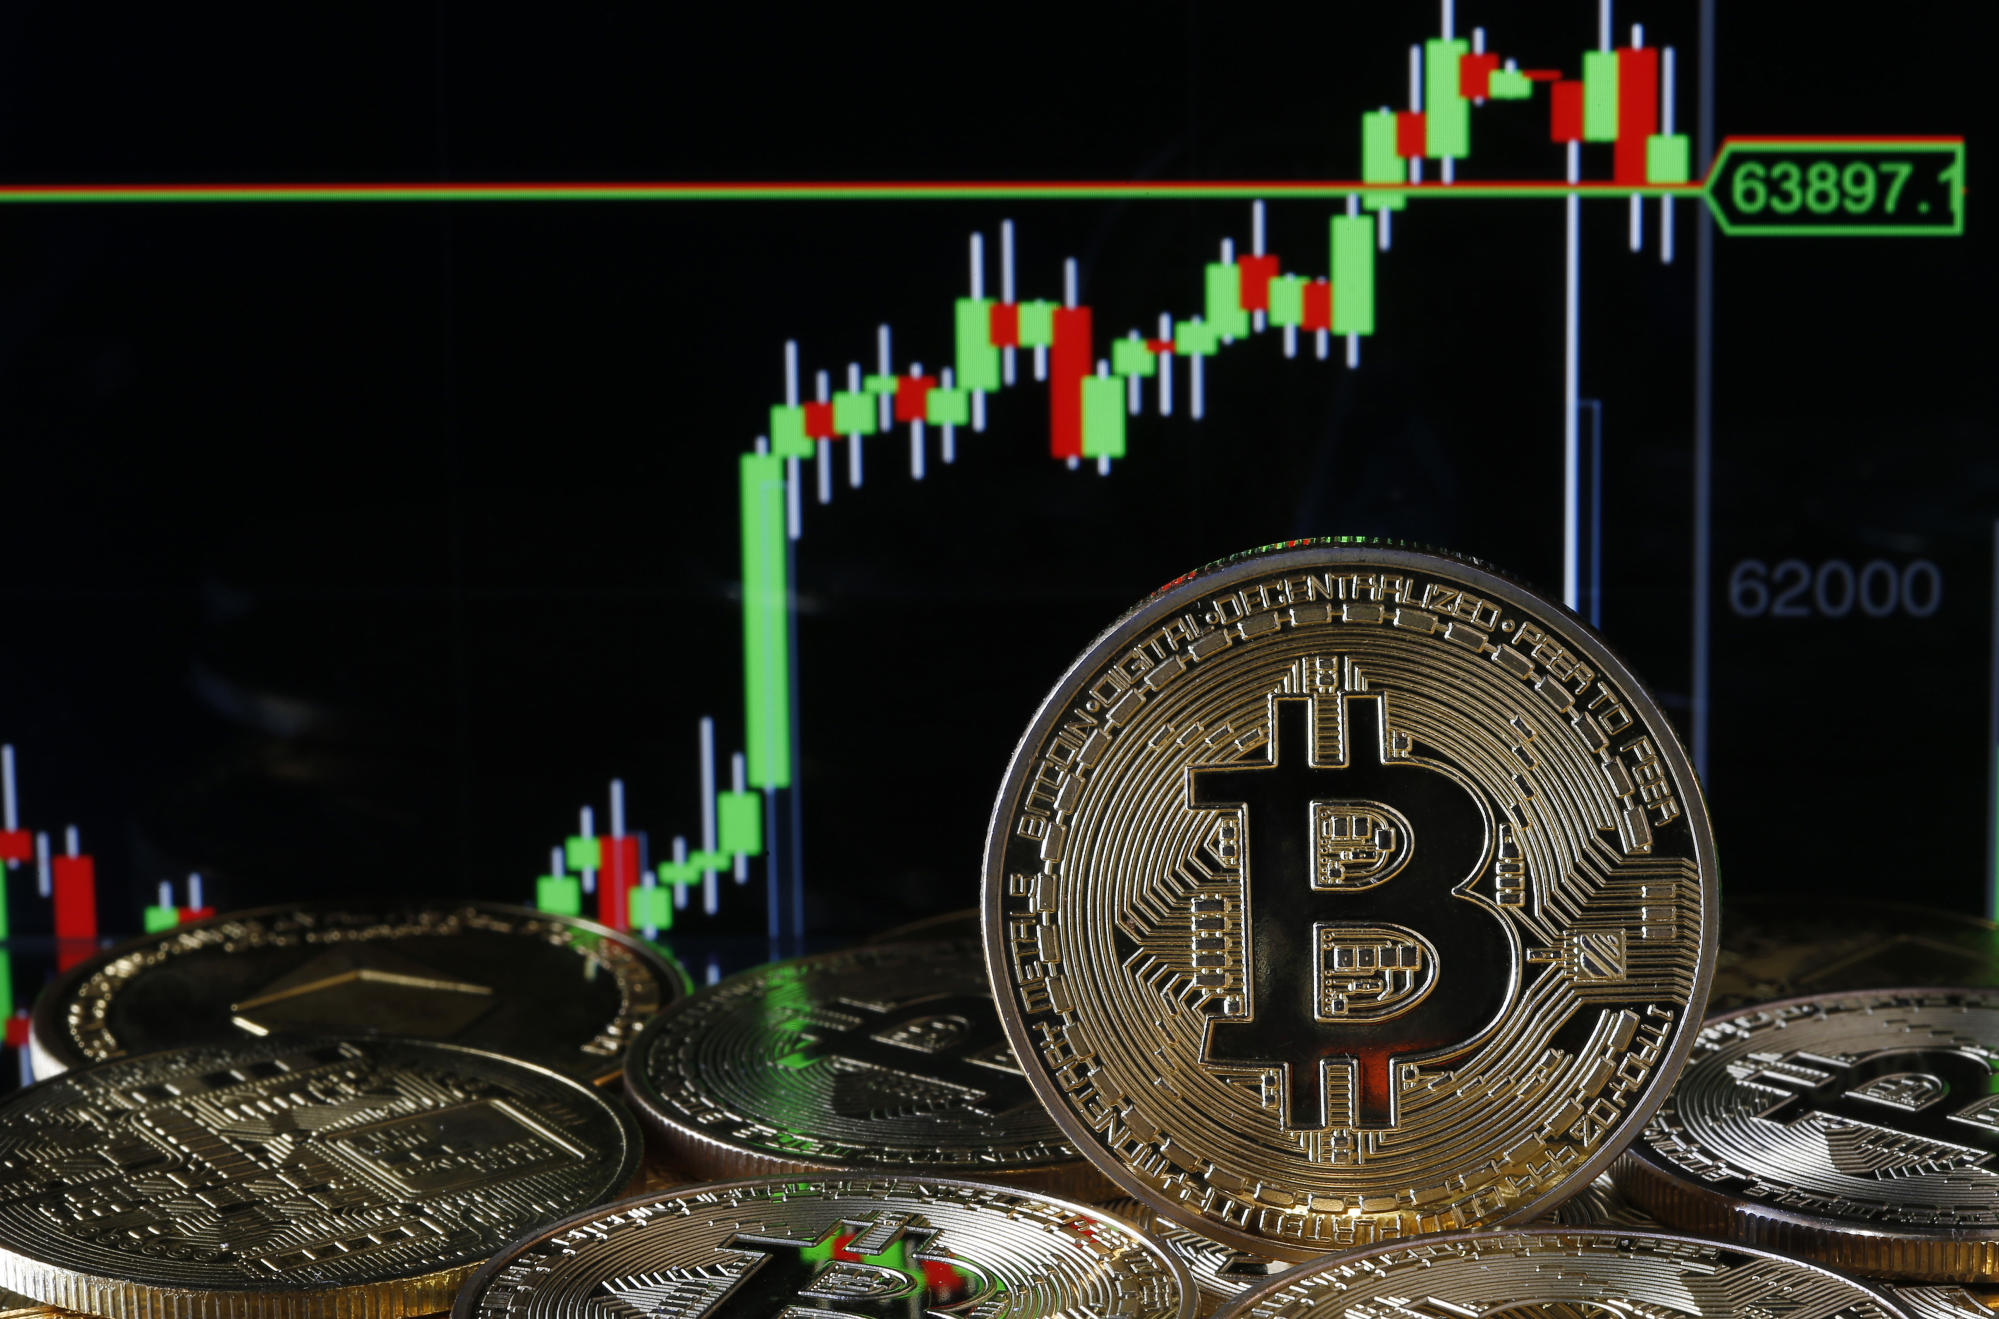 Crypto Prices Bitcoin Ethereum And Ripple Recover After Volatile Weekend